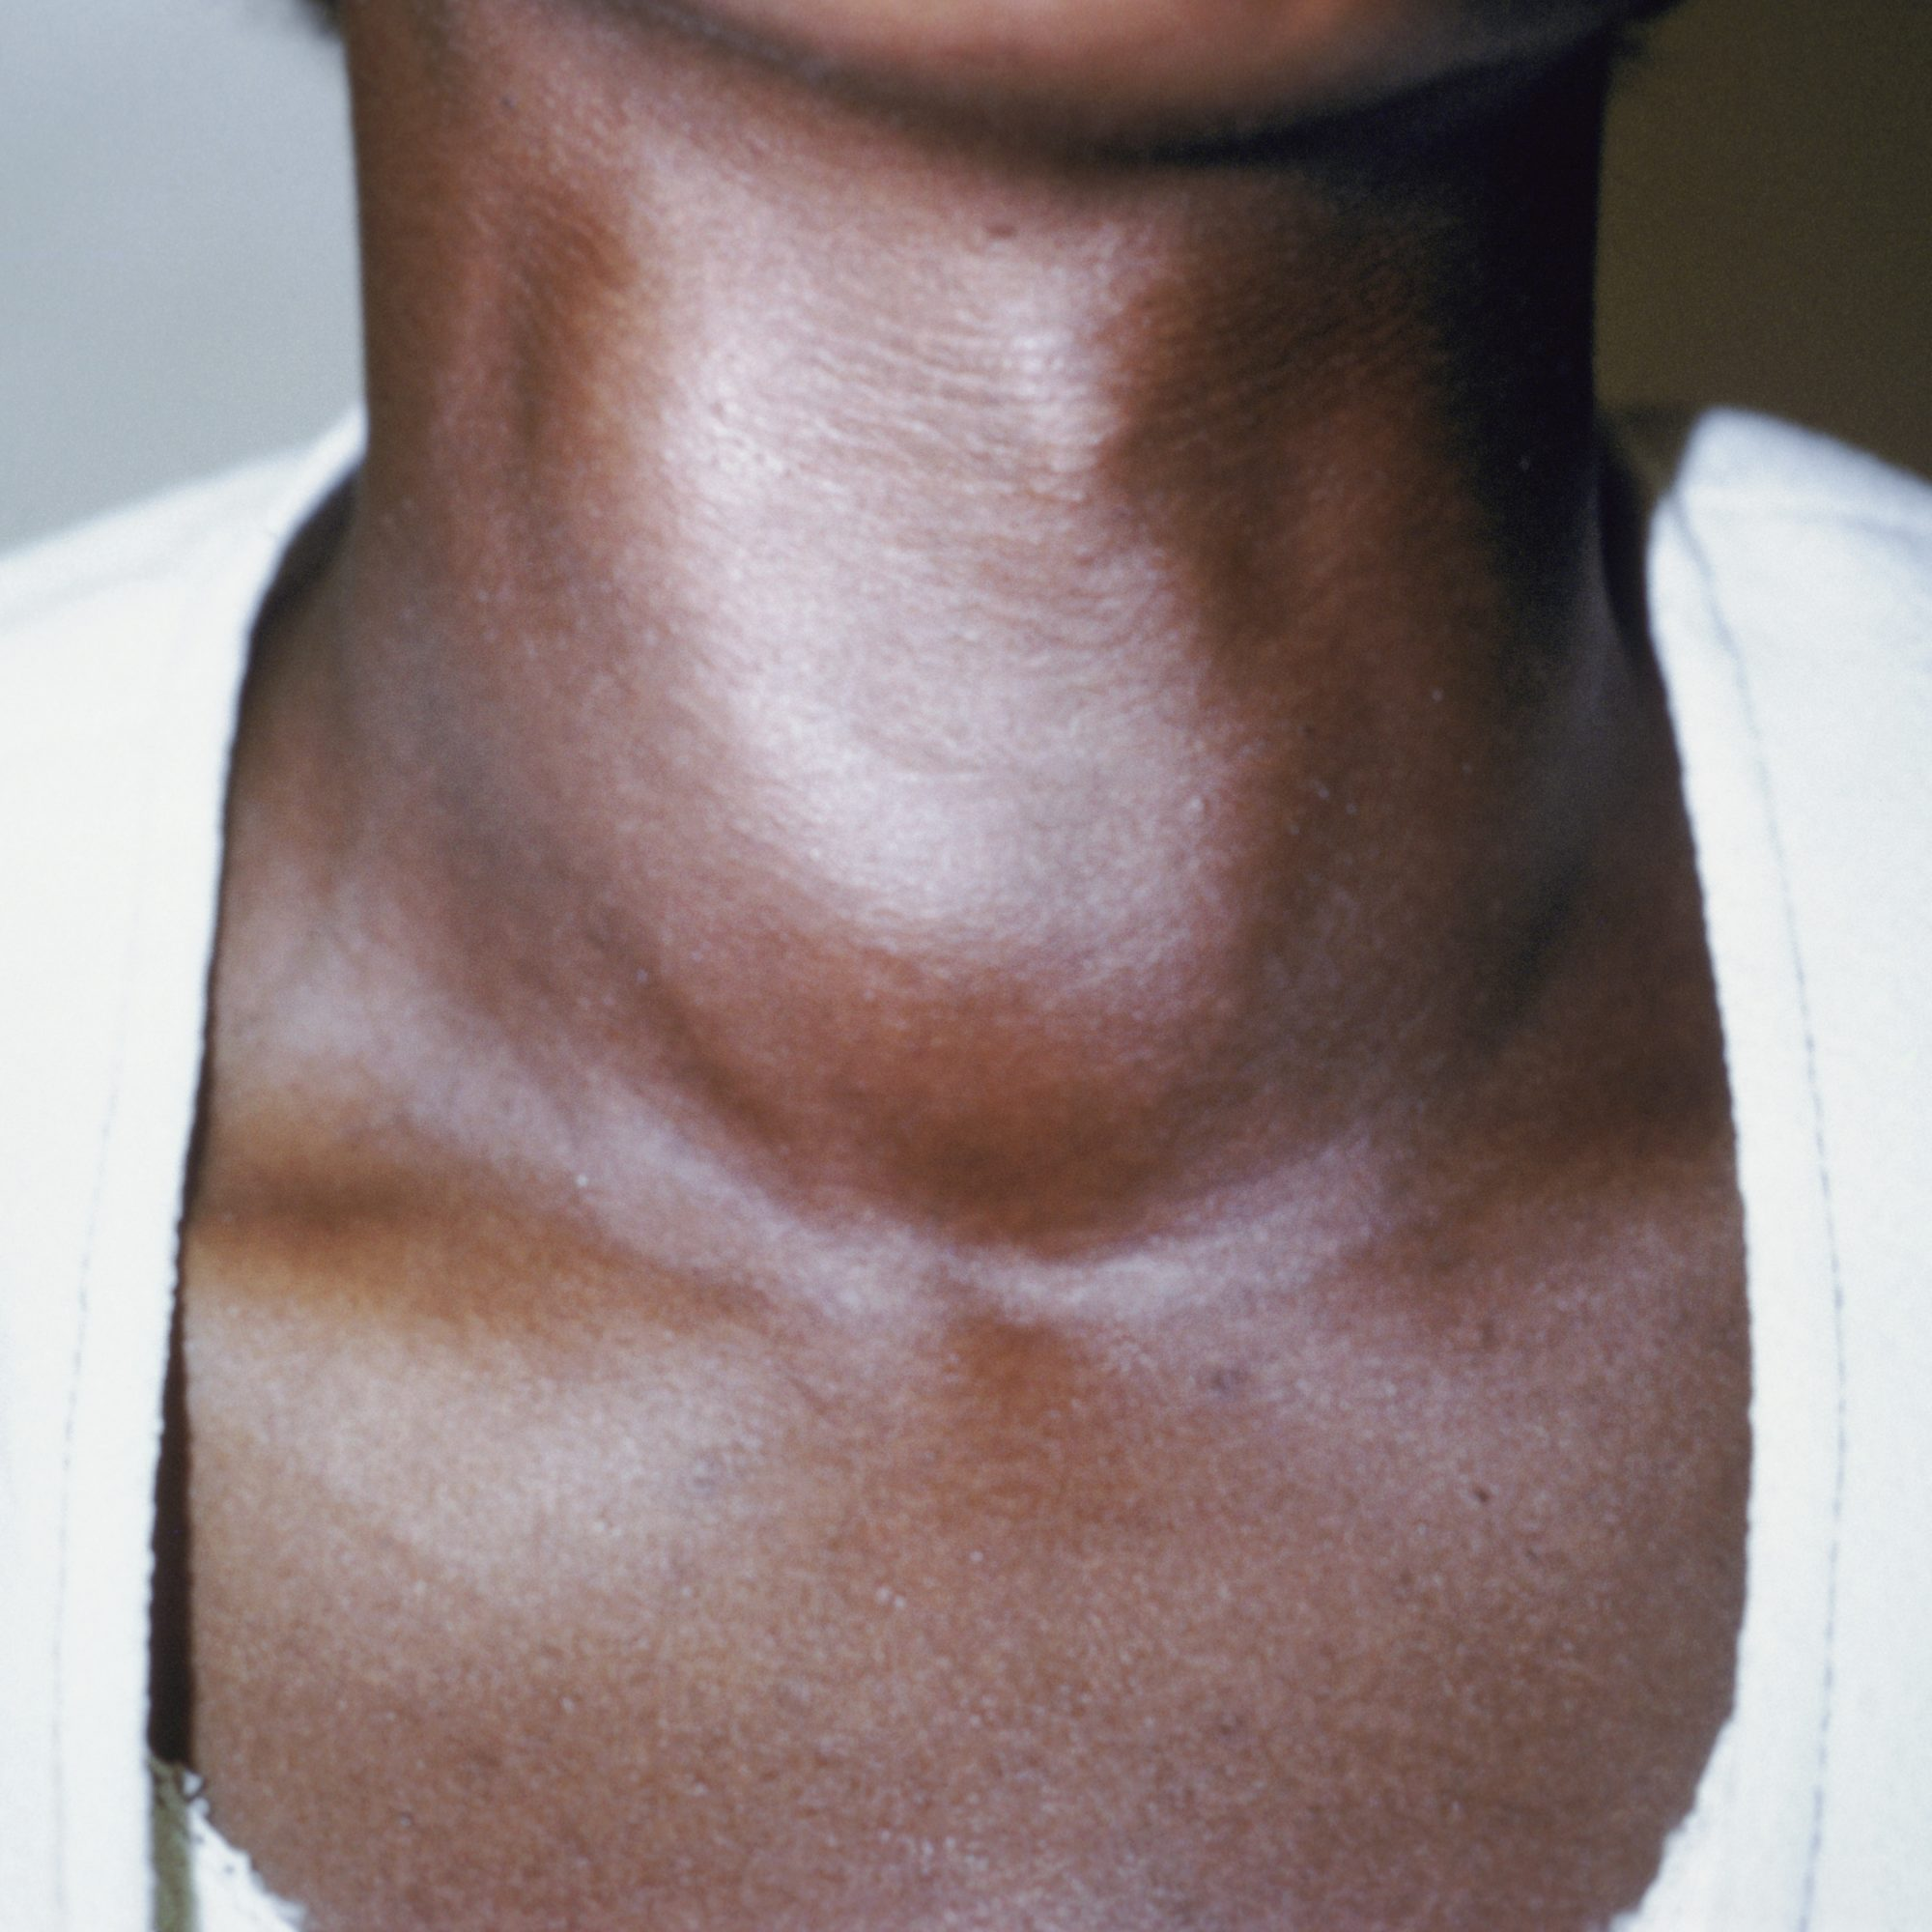 Iodine deficiency can cause a goiter